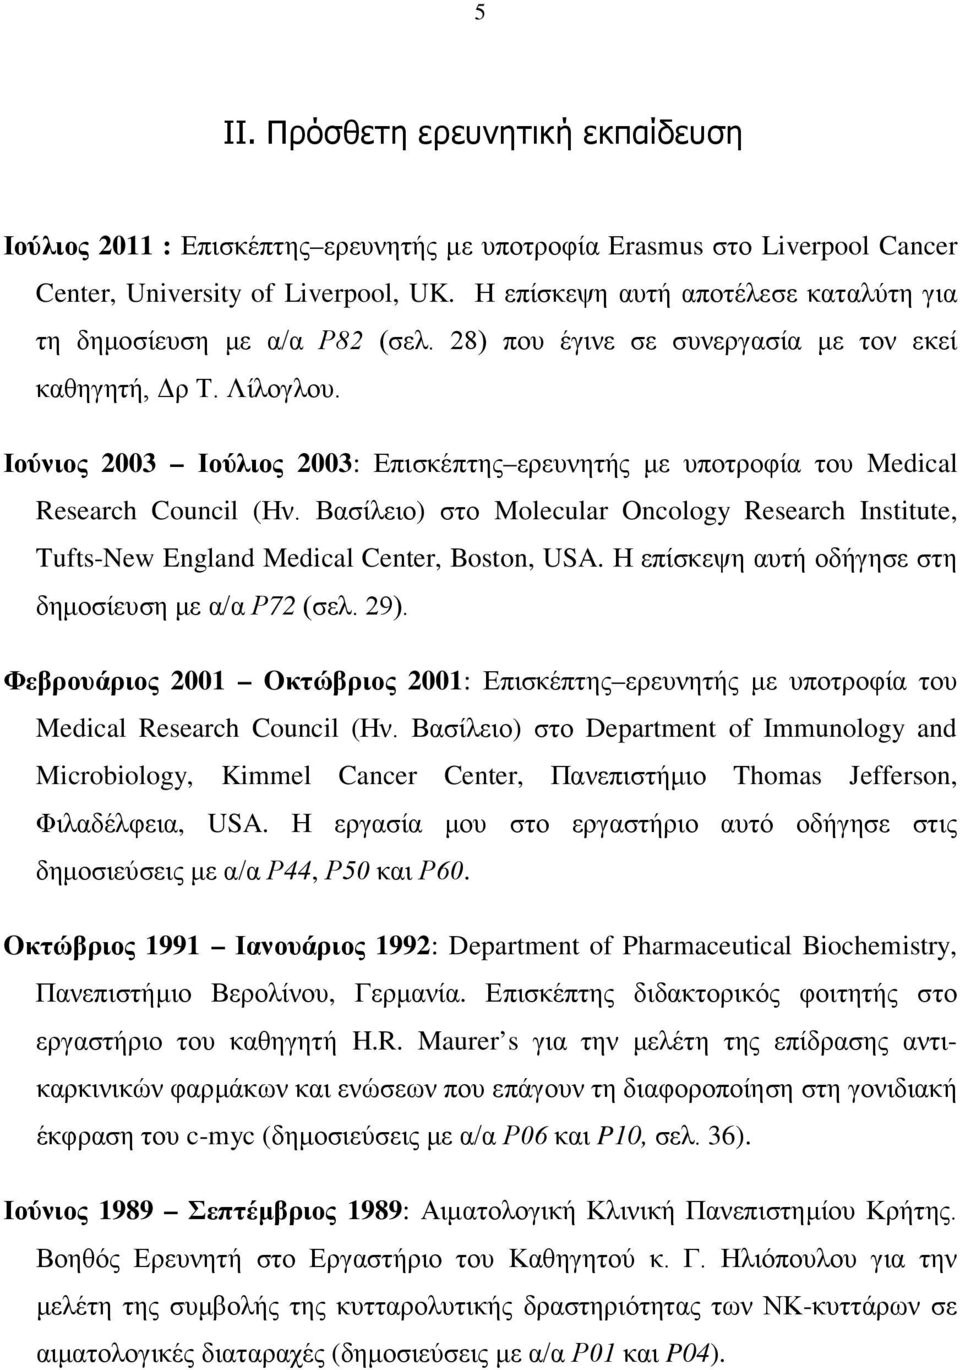 Ρ72 Φεβρουάριος 2001 Oκτώβριος 2001: Medical Research Council ( ) Department of Immunology and Microbiology, Kimmel Cancer Center, Thomas